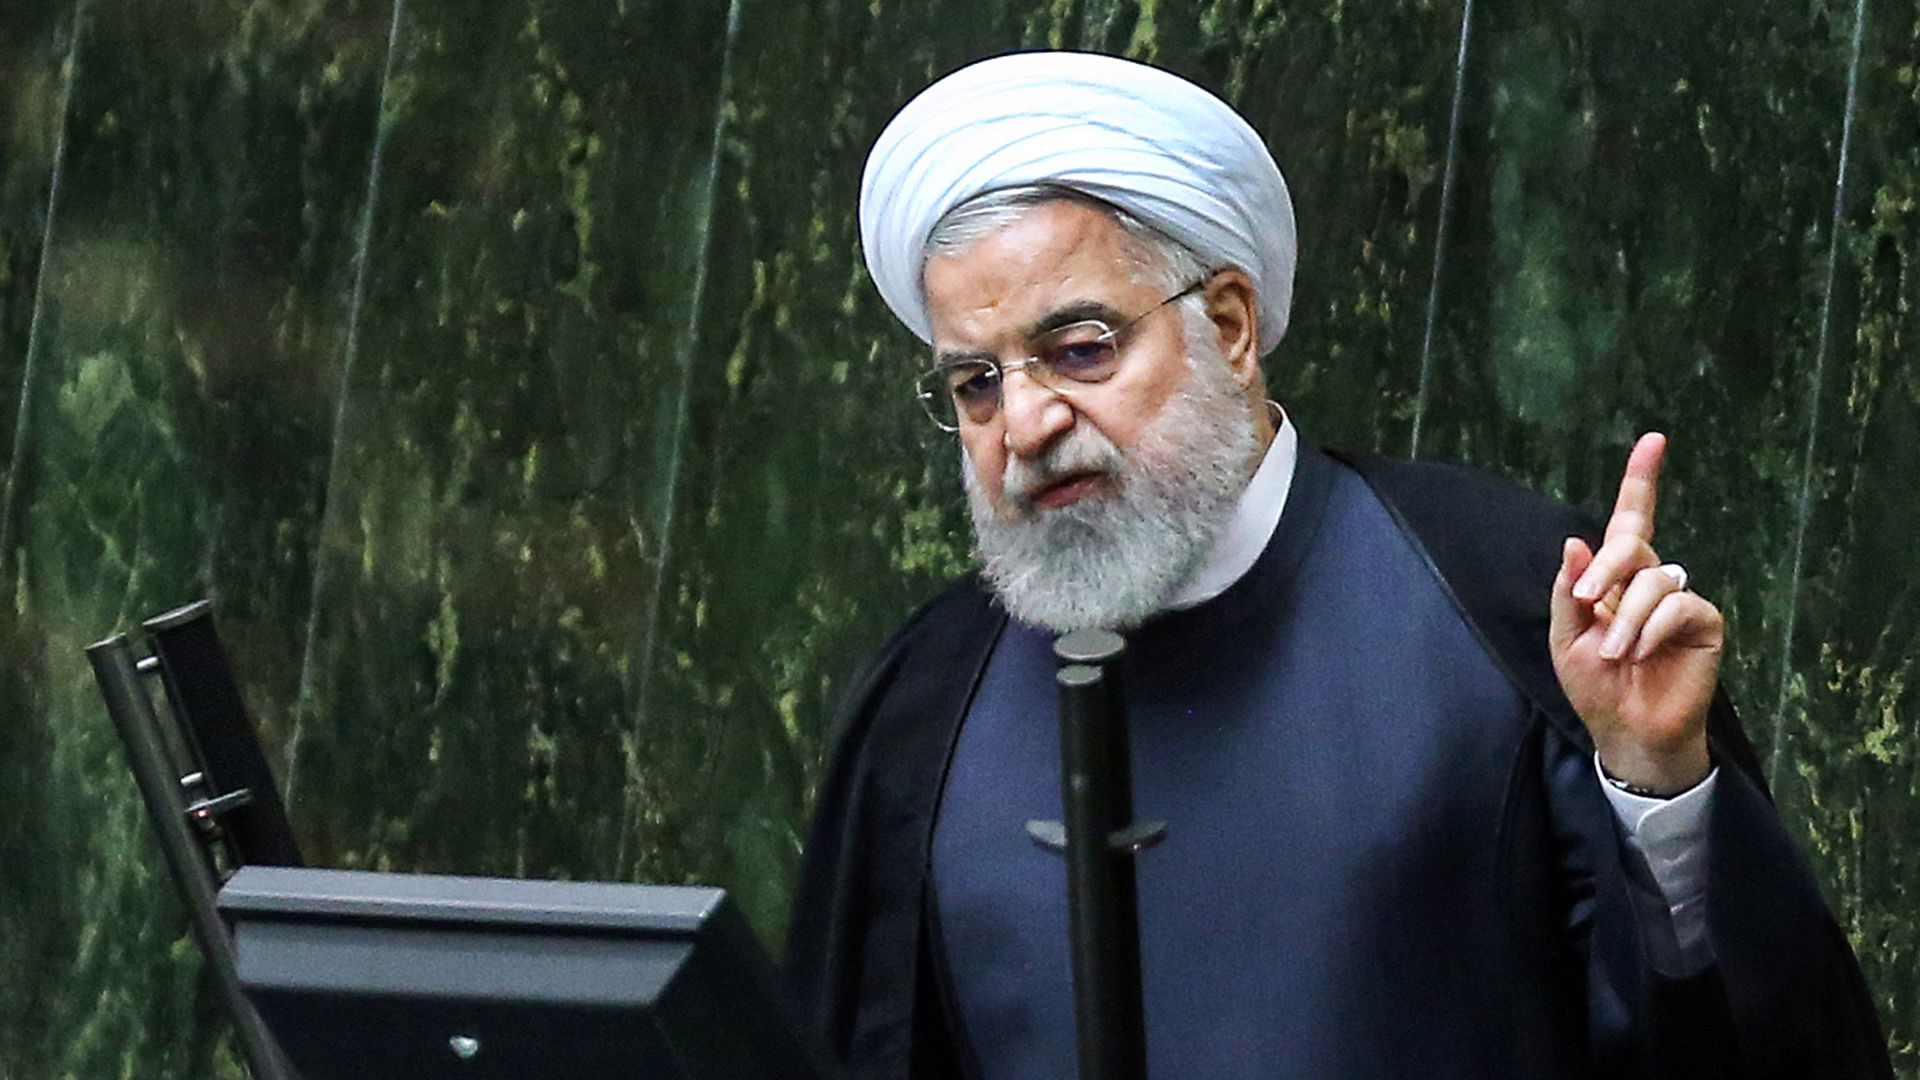 Iran's President Hassan Rouhani speaks at parliament in the capital Tehran on September 3